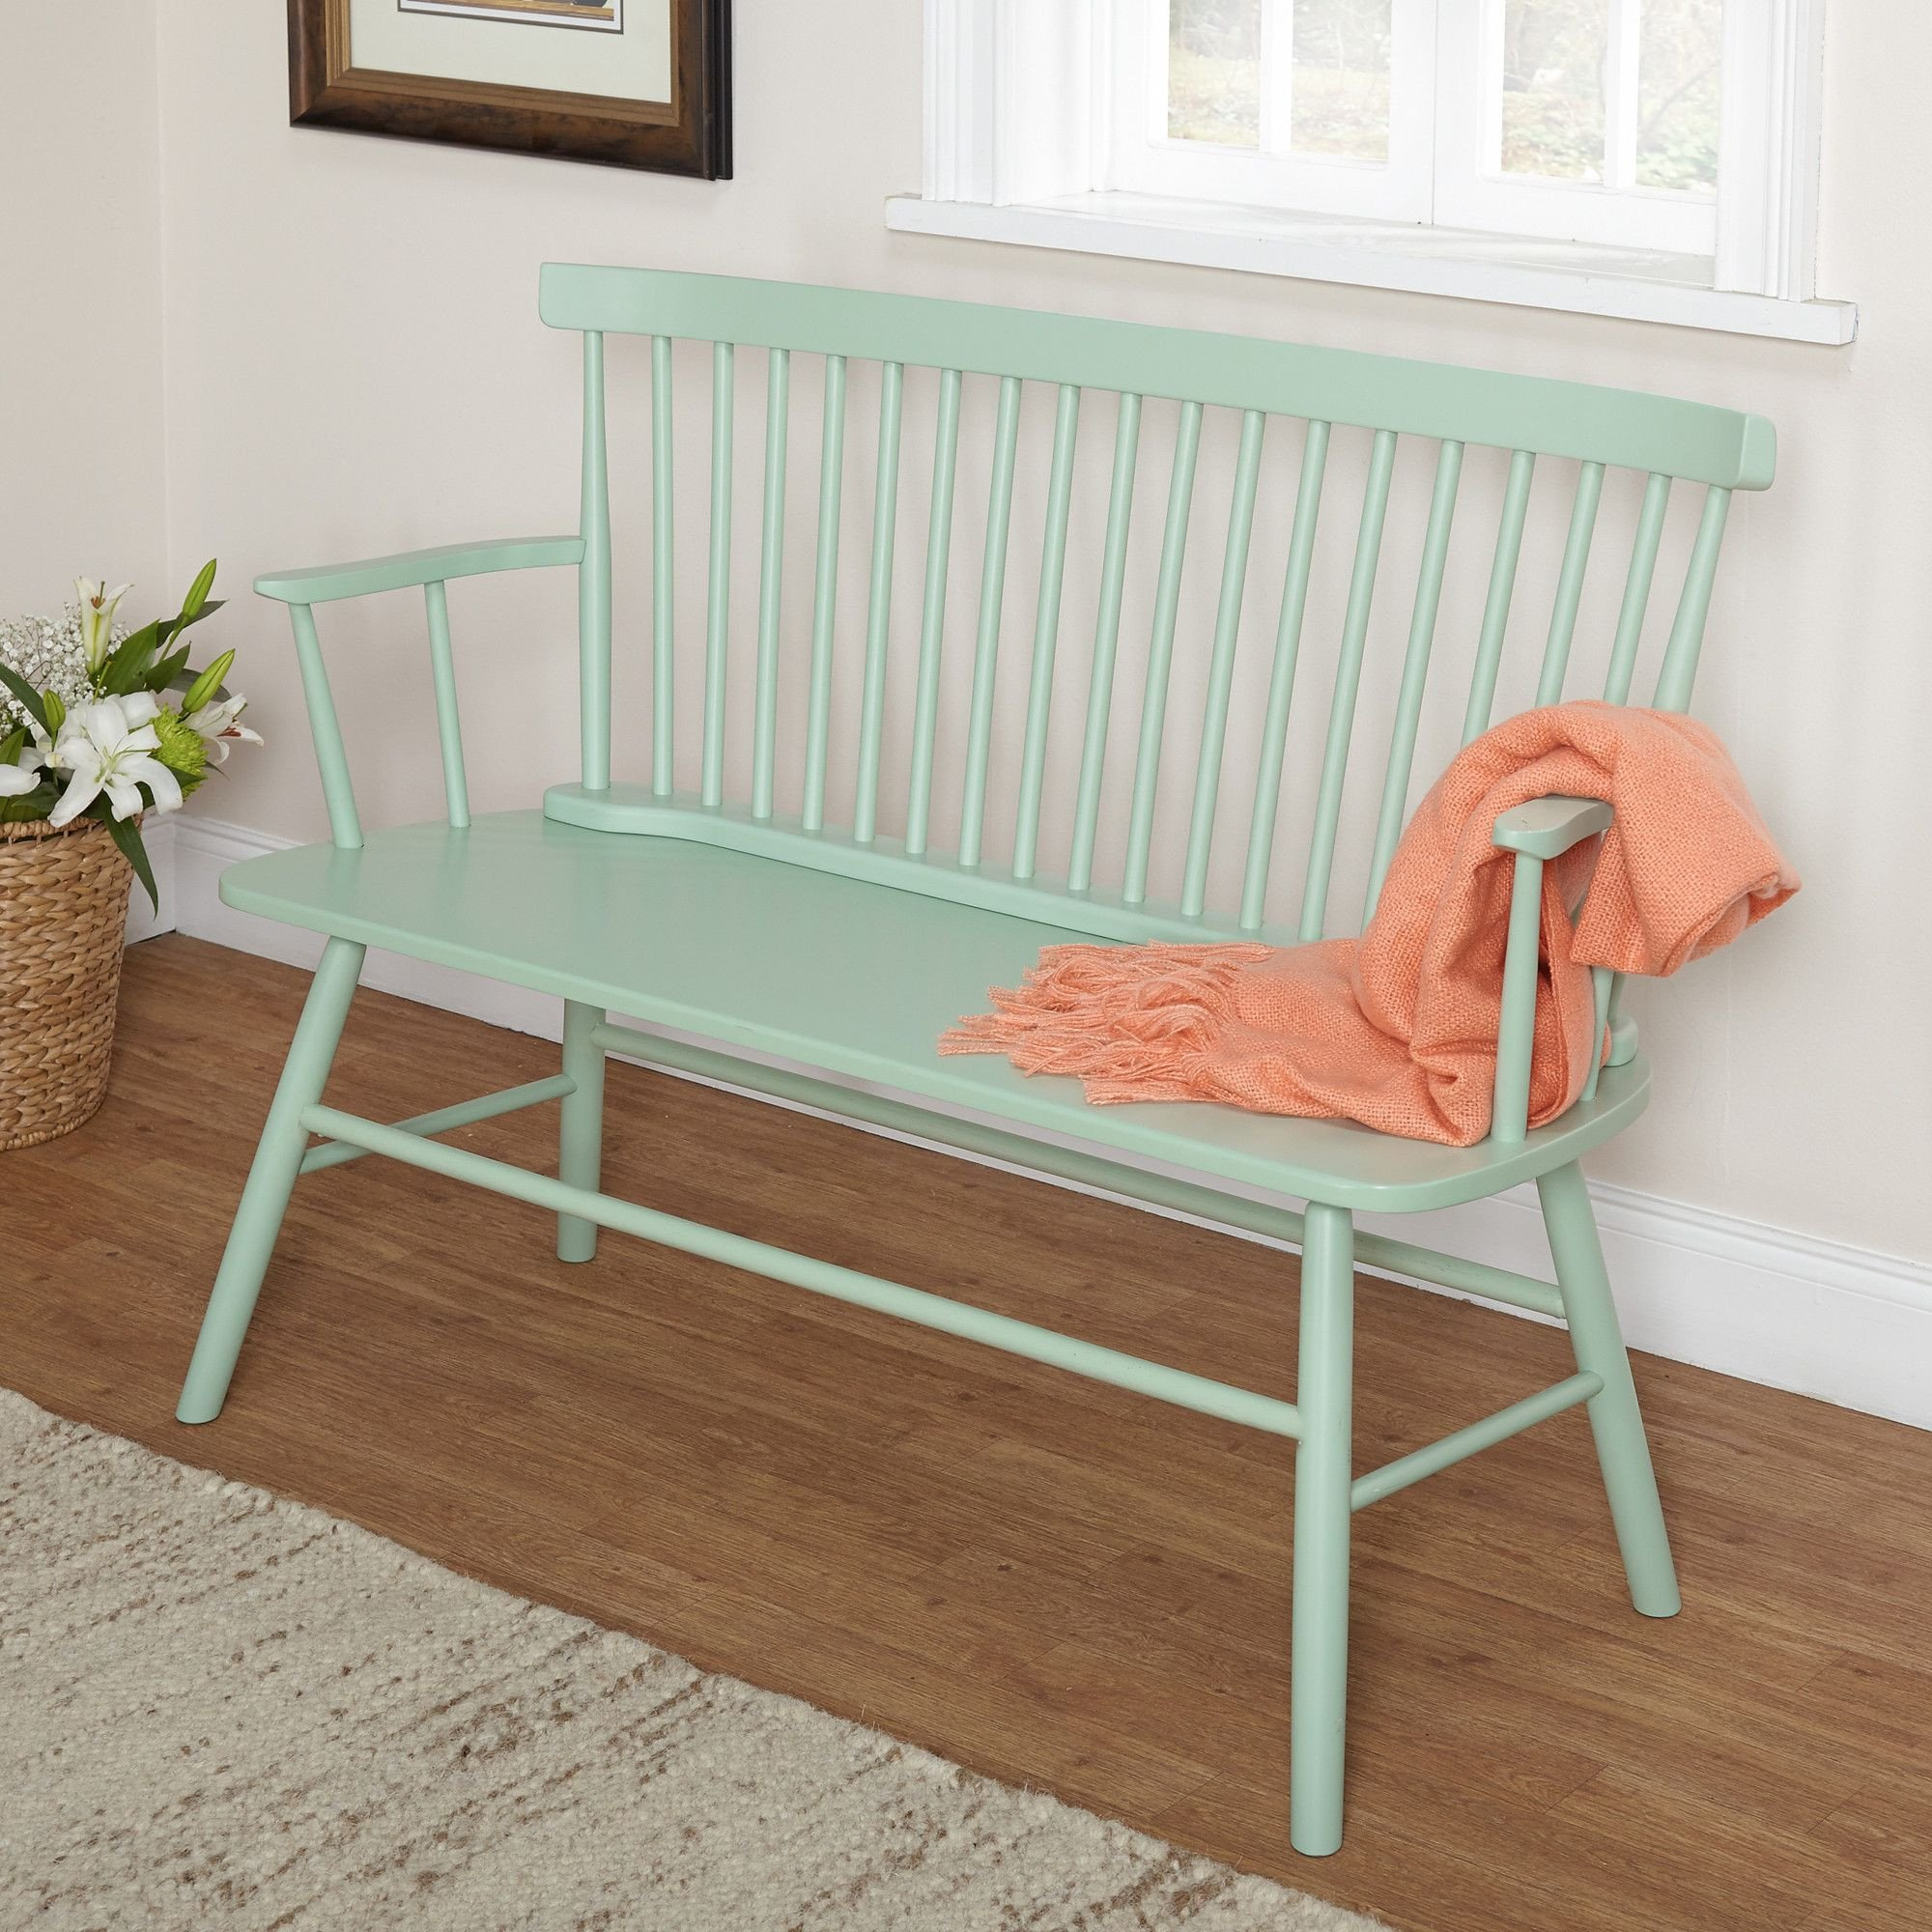 Bedroom Bench with Back Awesome Features Beautiful and Urban Country Look Classic